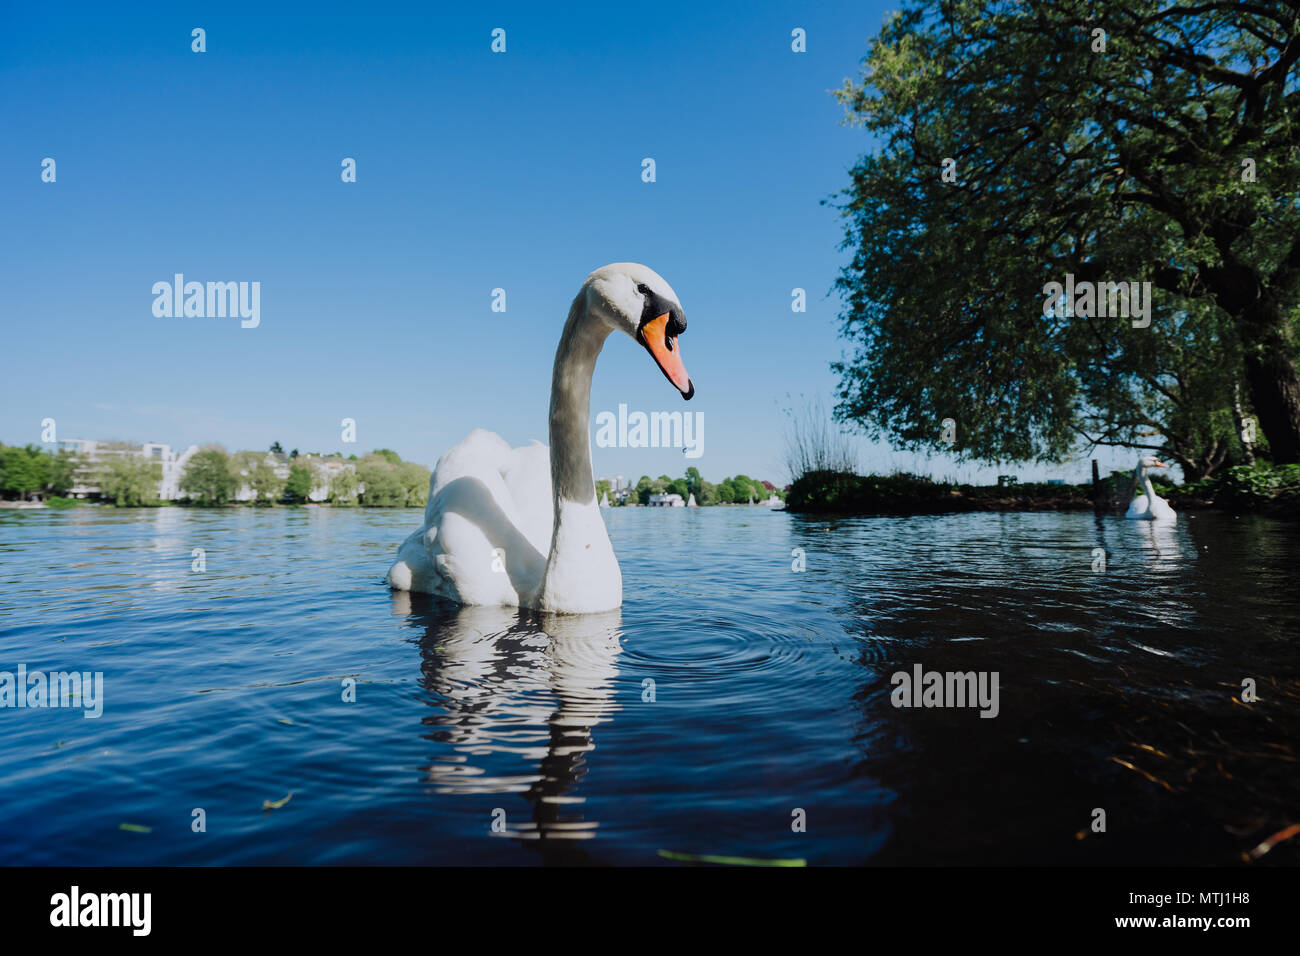 Grace swan swimming on Alster Lake in Hamburg on a sunny day - Stock Image